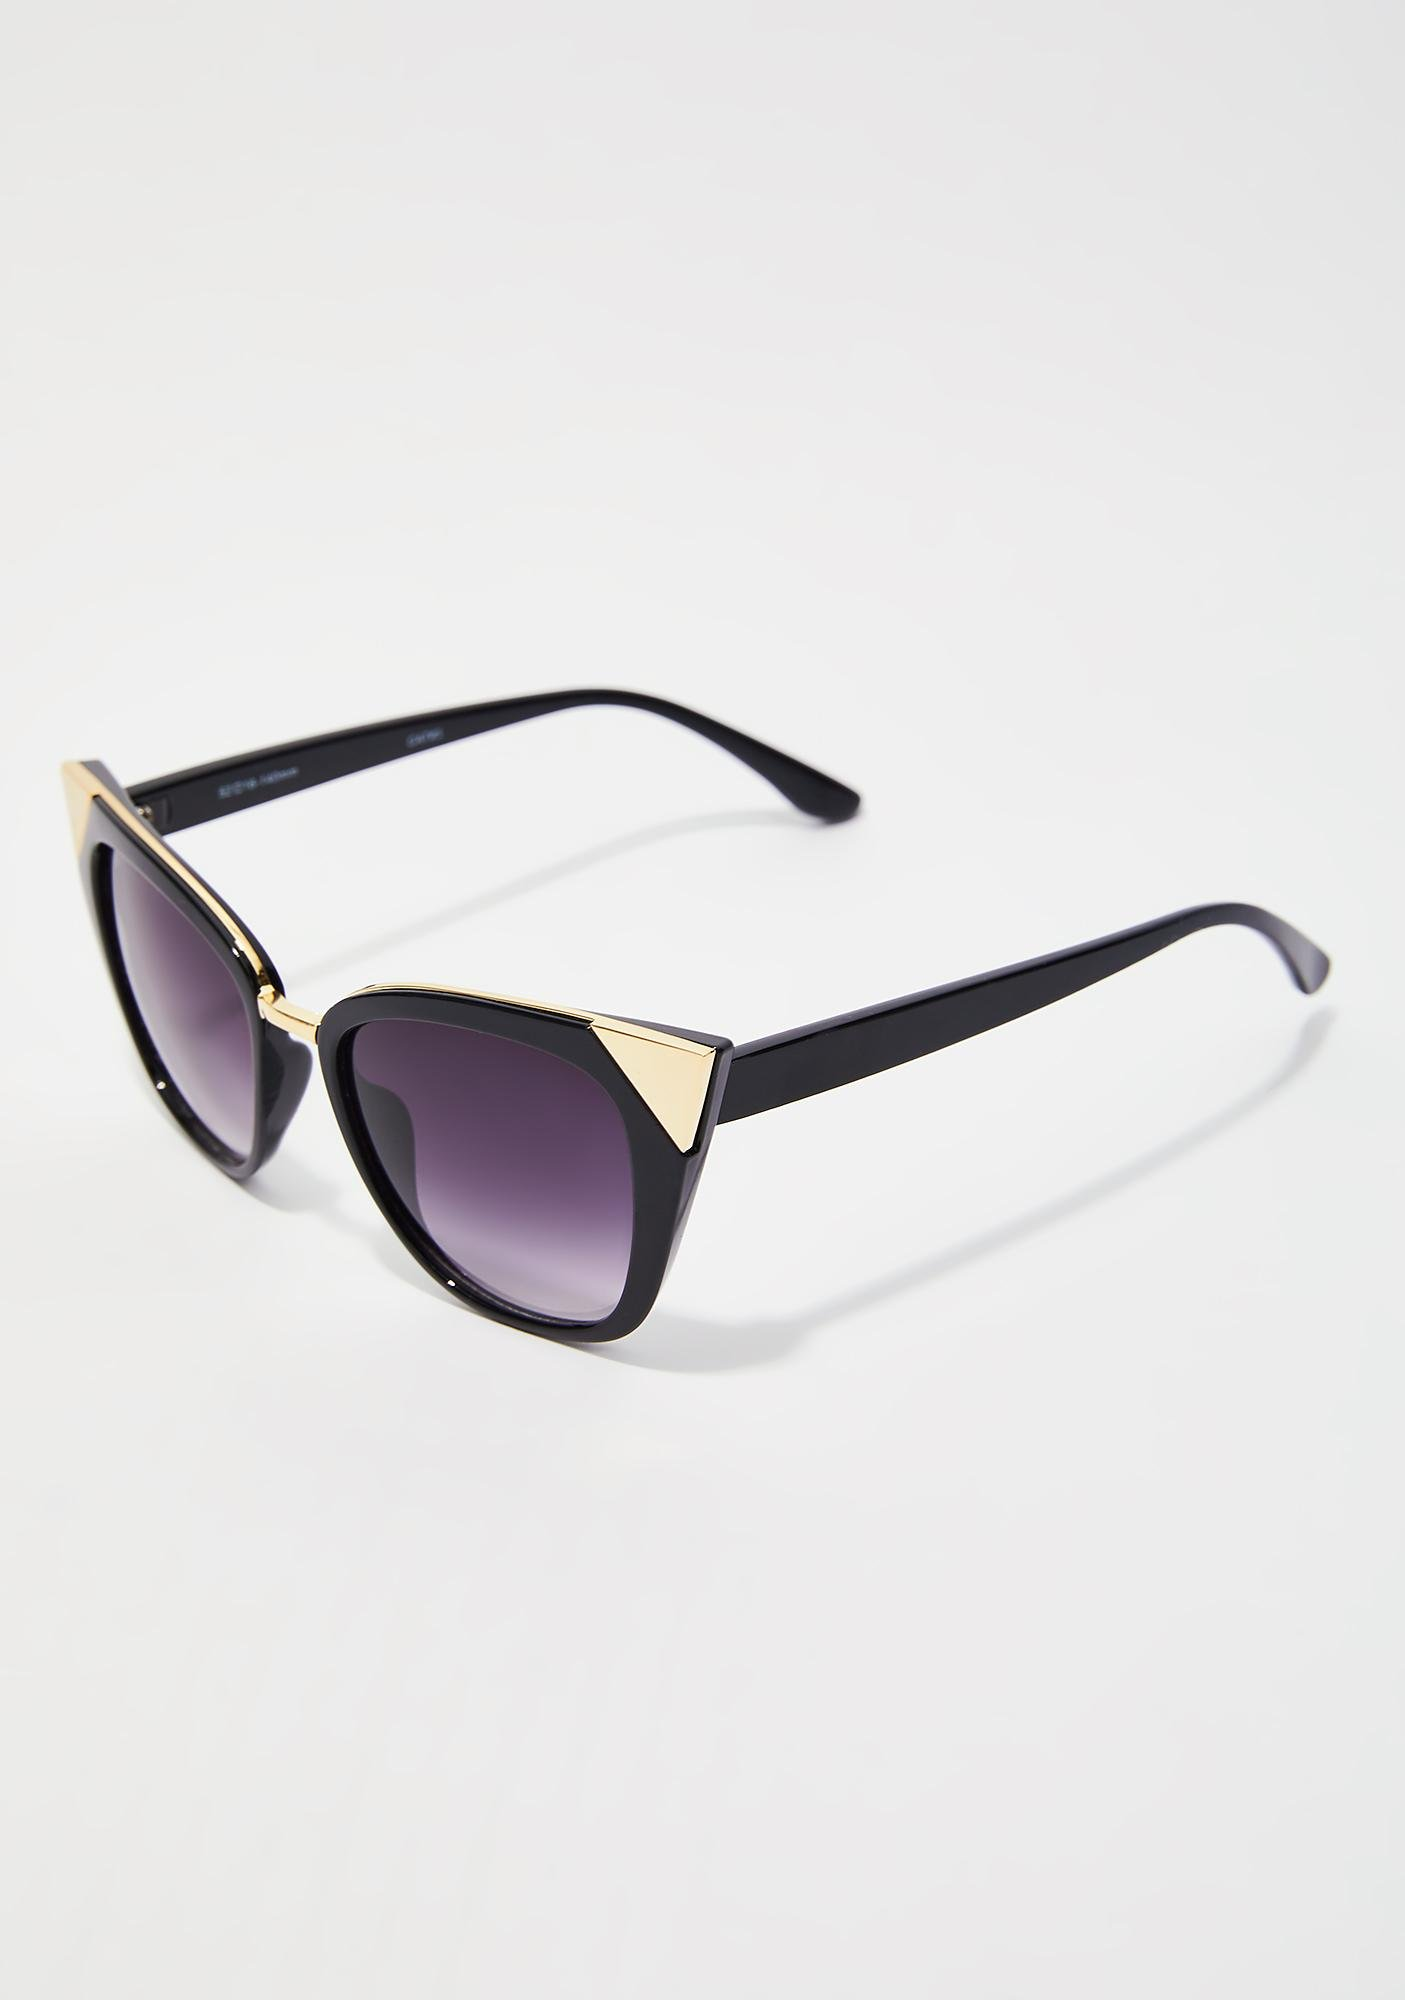 Golden Child Sunglasses